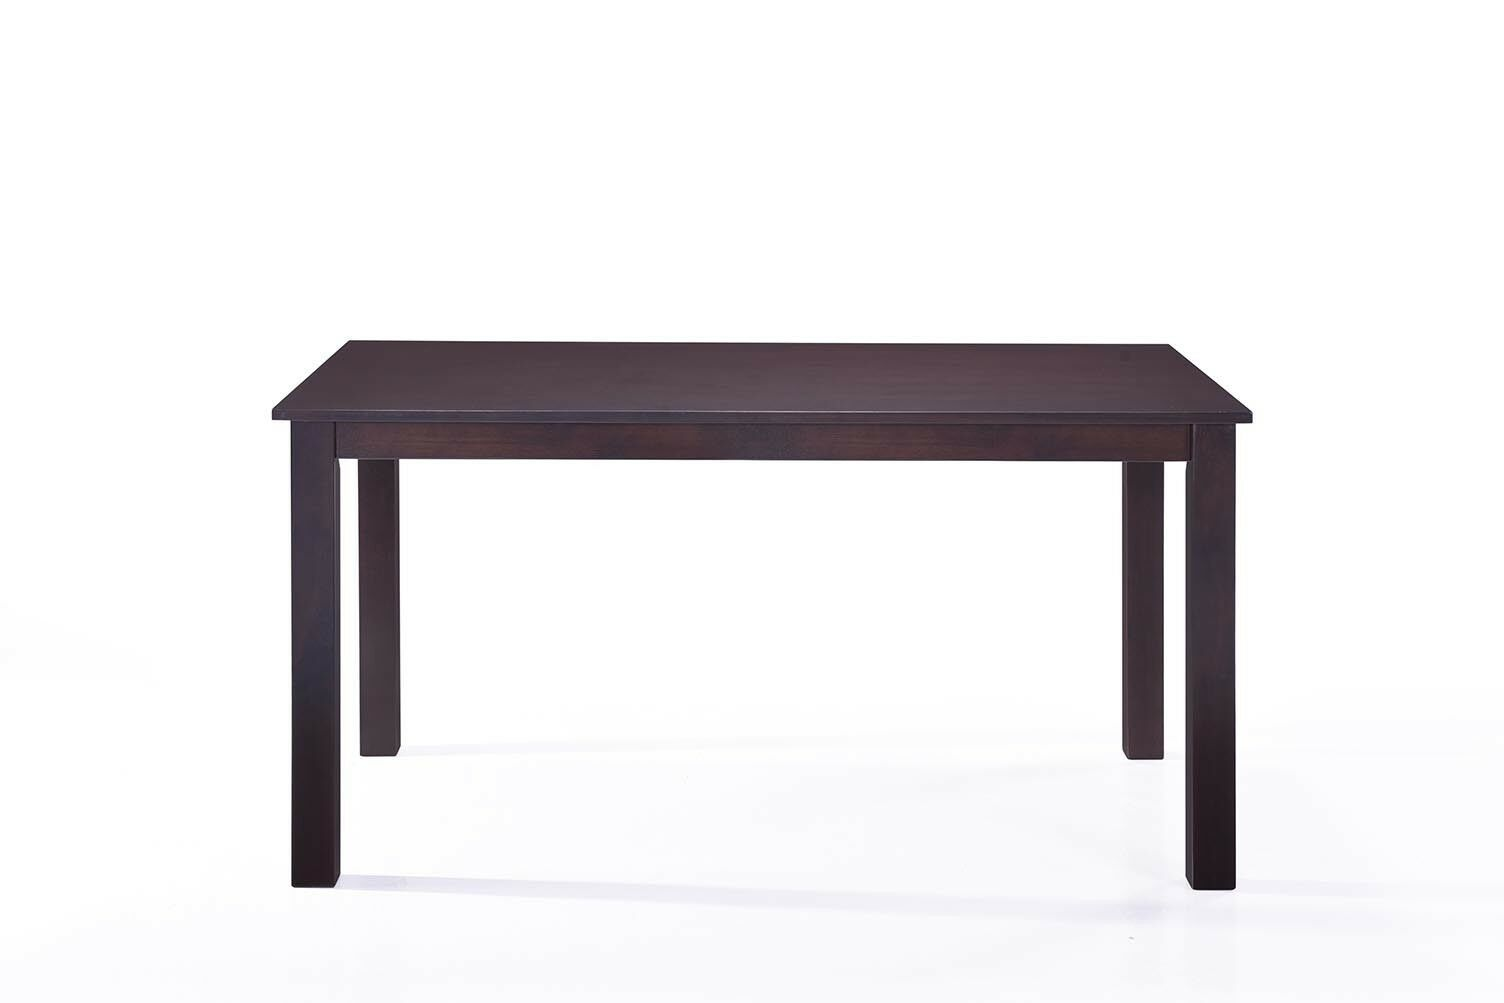 Details About 6 Person Dining Table Espresso Finish 36 X 60 Dining Table Solid Wood Dining Table Wood Dining Table